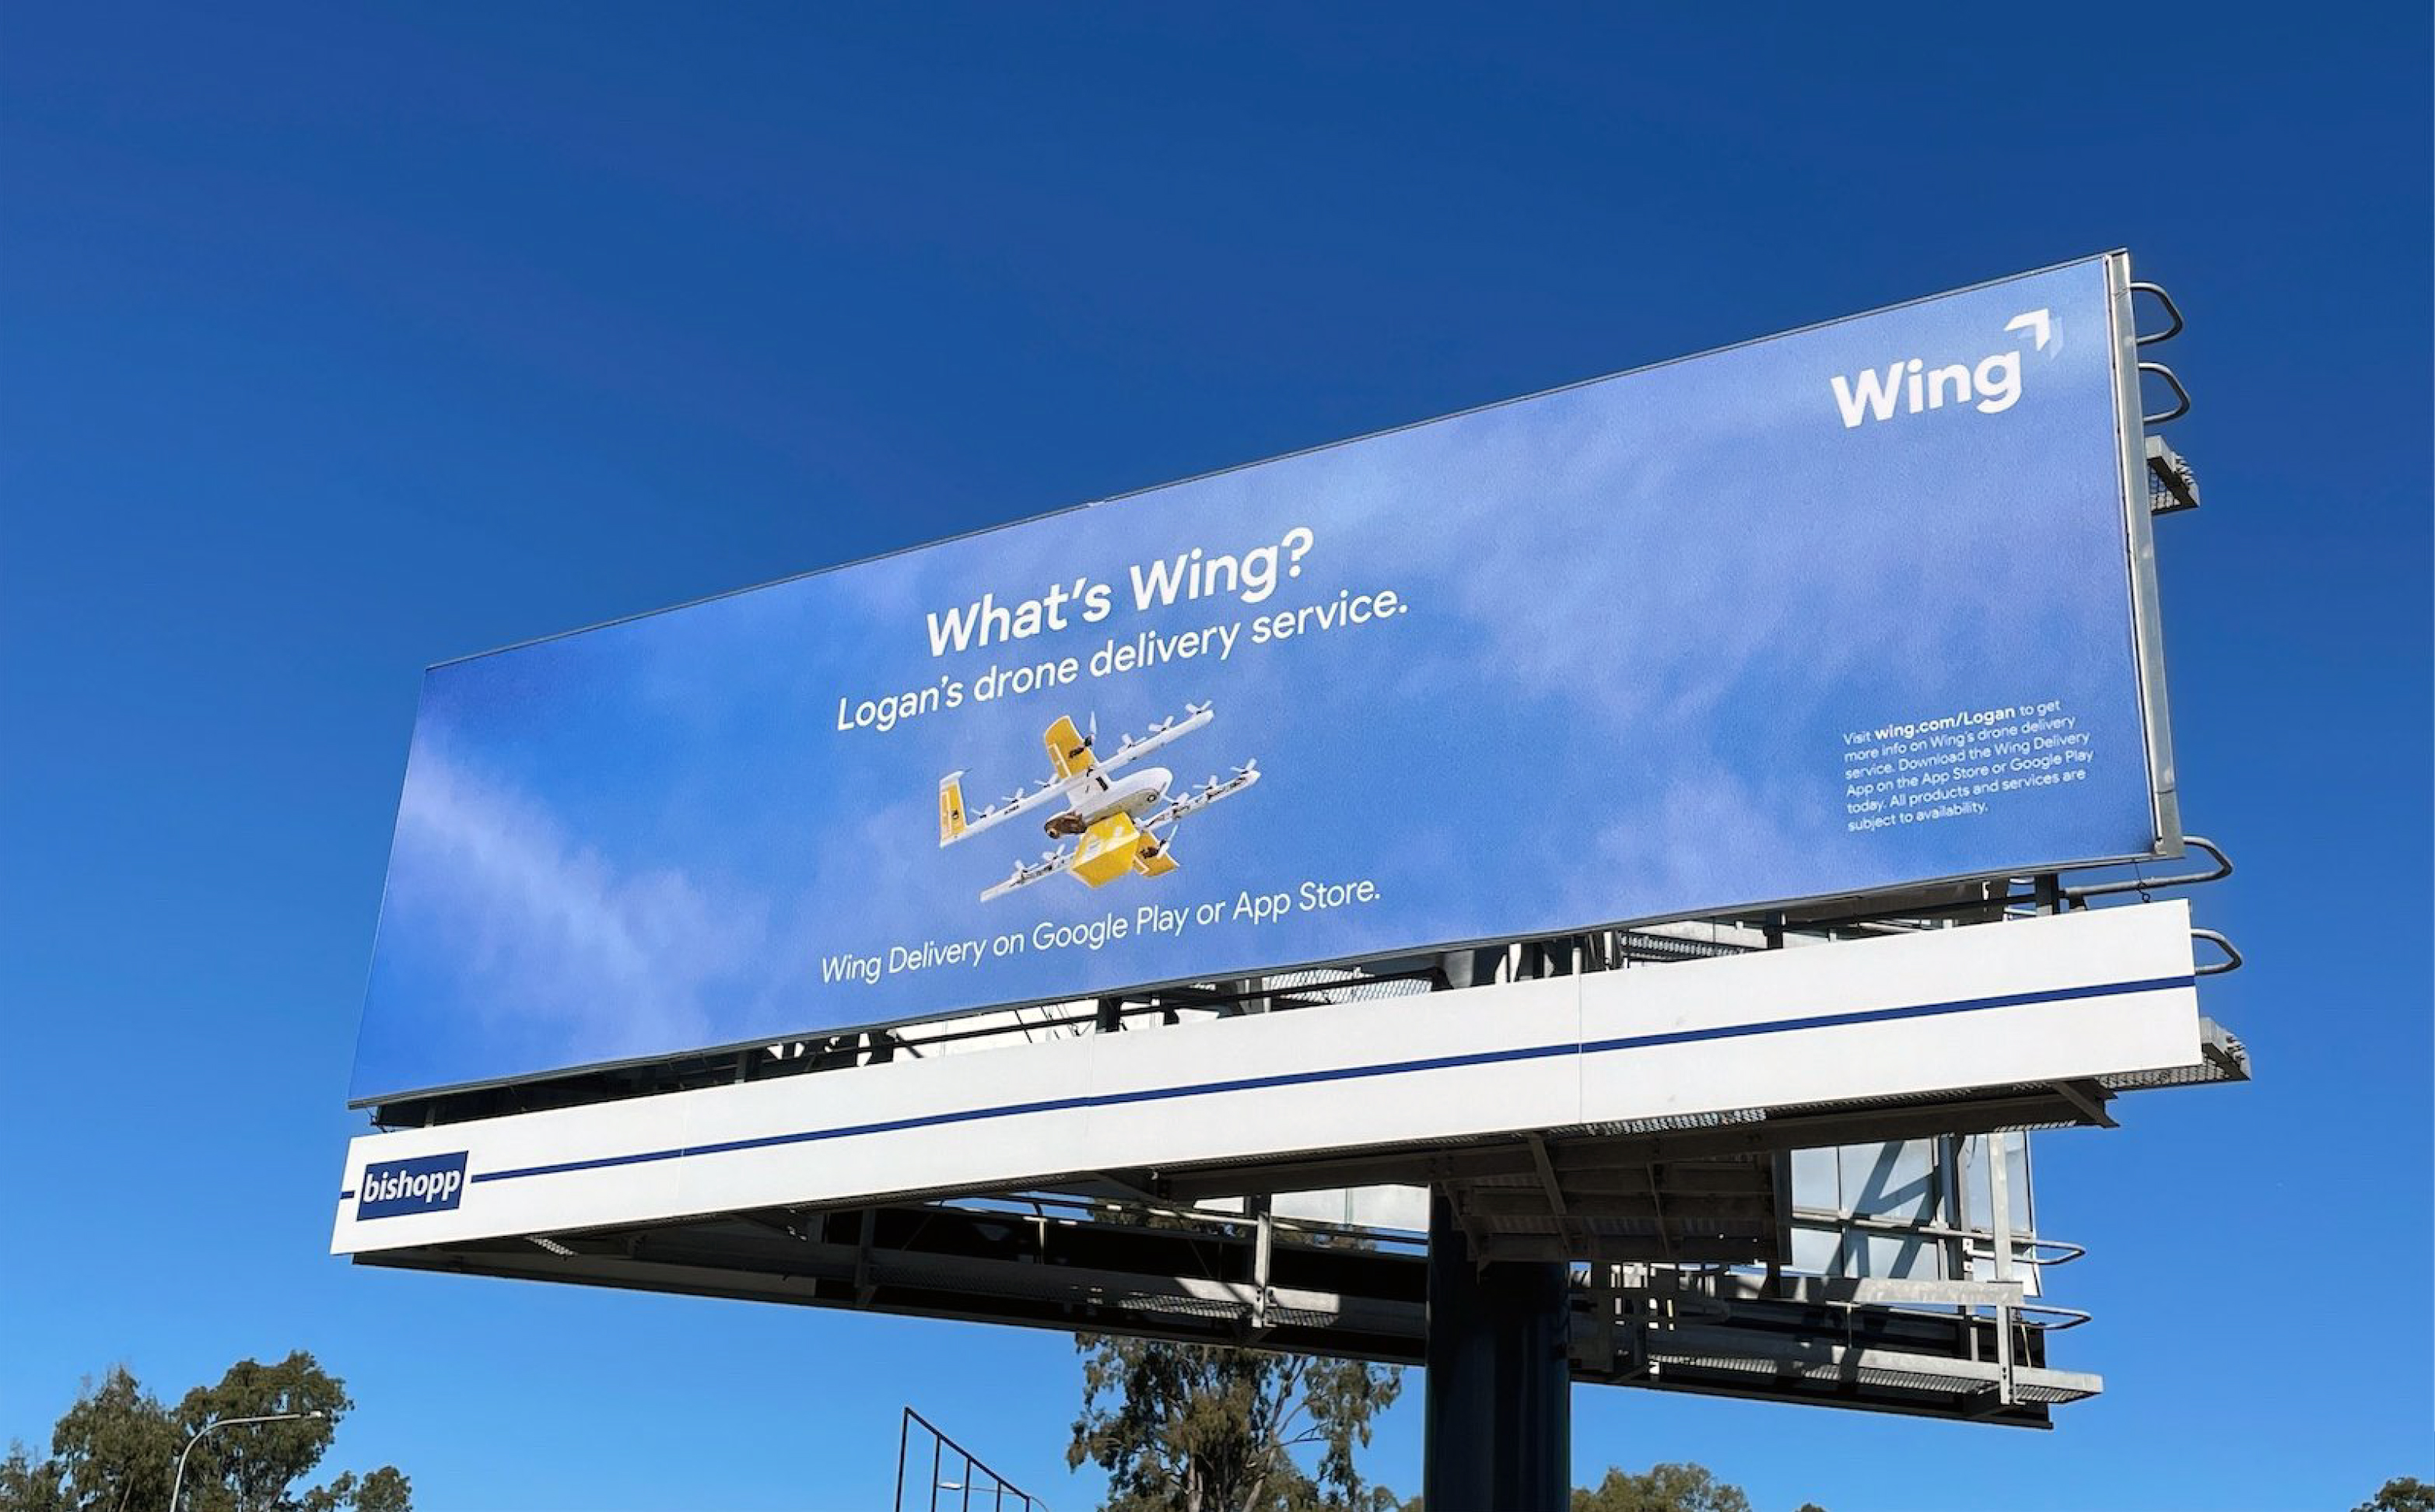 """Image of a billboard on-site at a secondary location in a clear, blue sky among trees. The billboard featuring photography of a Wing commercial drone. The billboard says """"What's Wing? Australia's first drone service, in Logan. Wing Delivery on Google Play or App Store."""""""